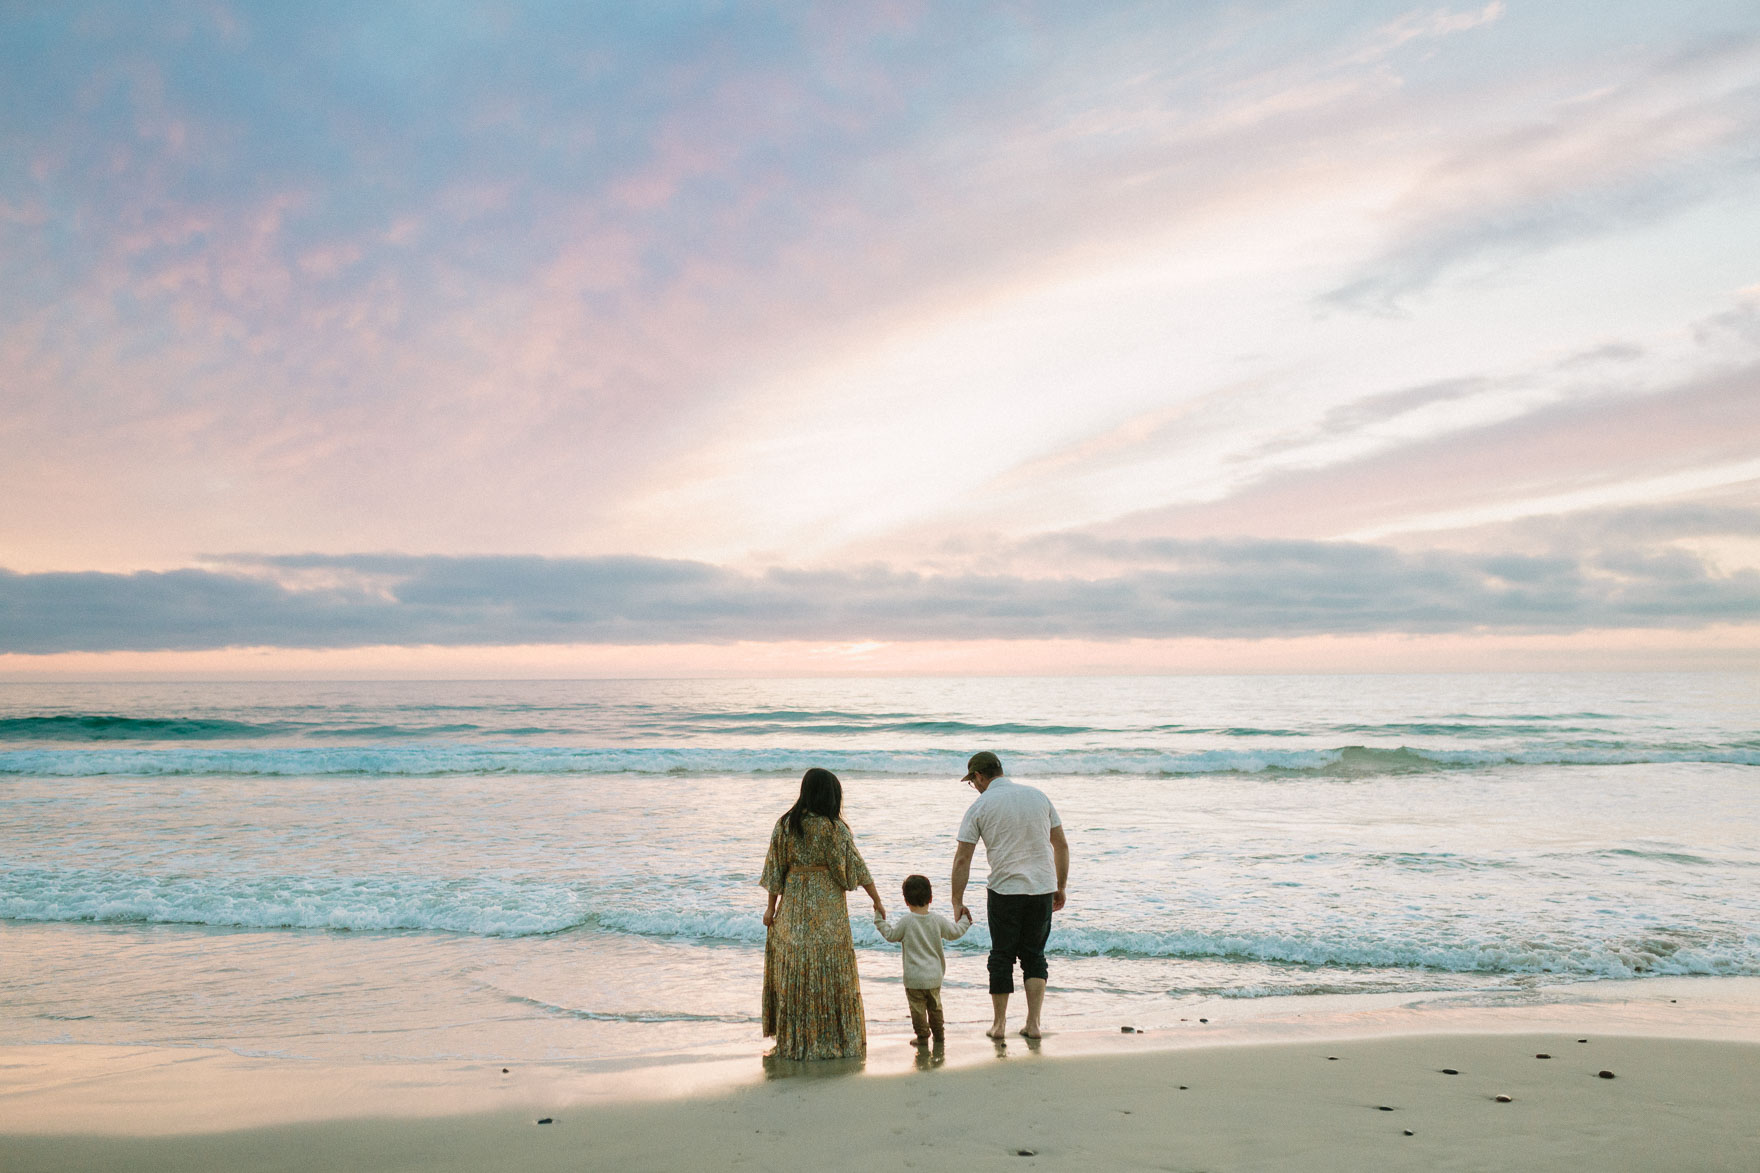 A Beachy Sunset Splash – Photo by Let's Frolic Together